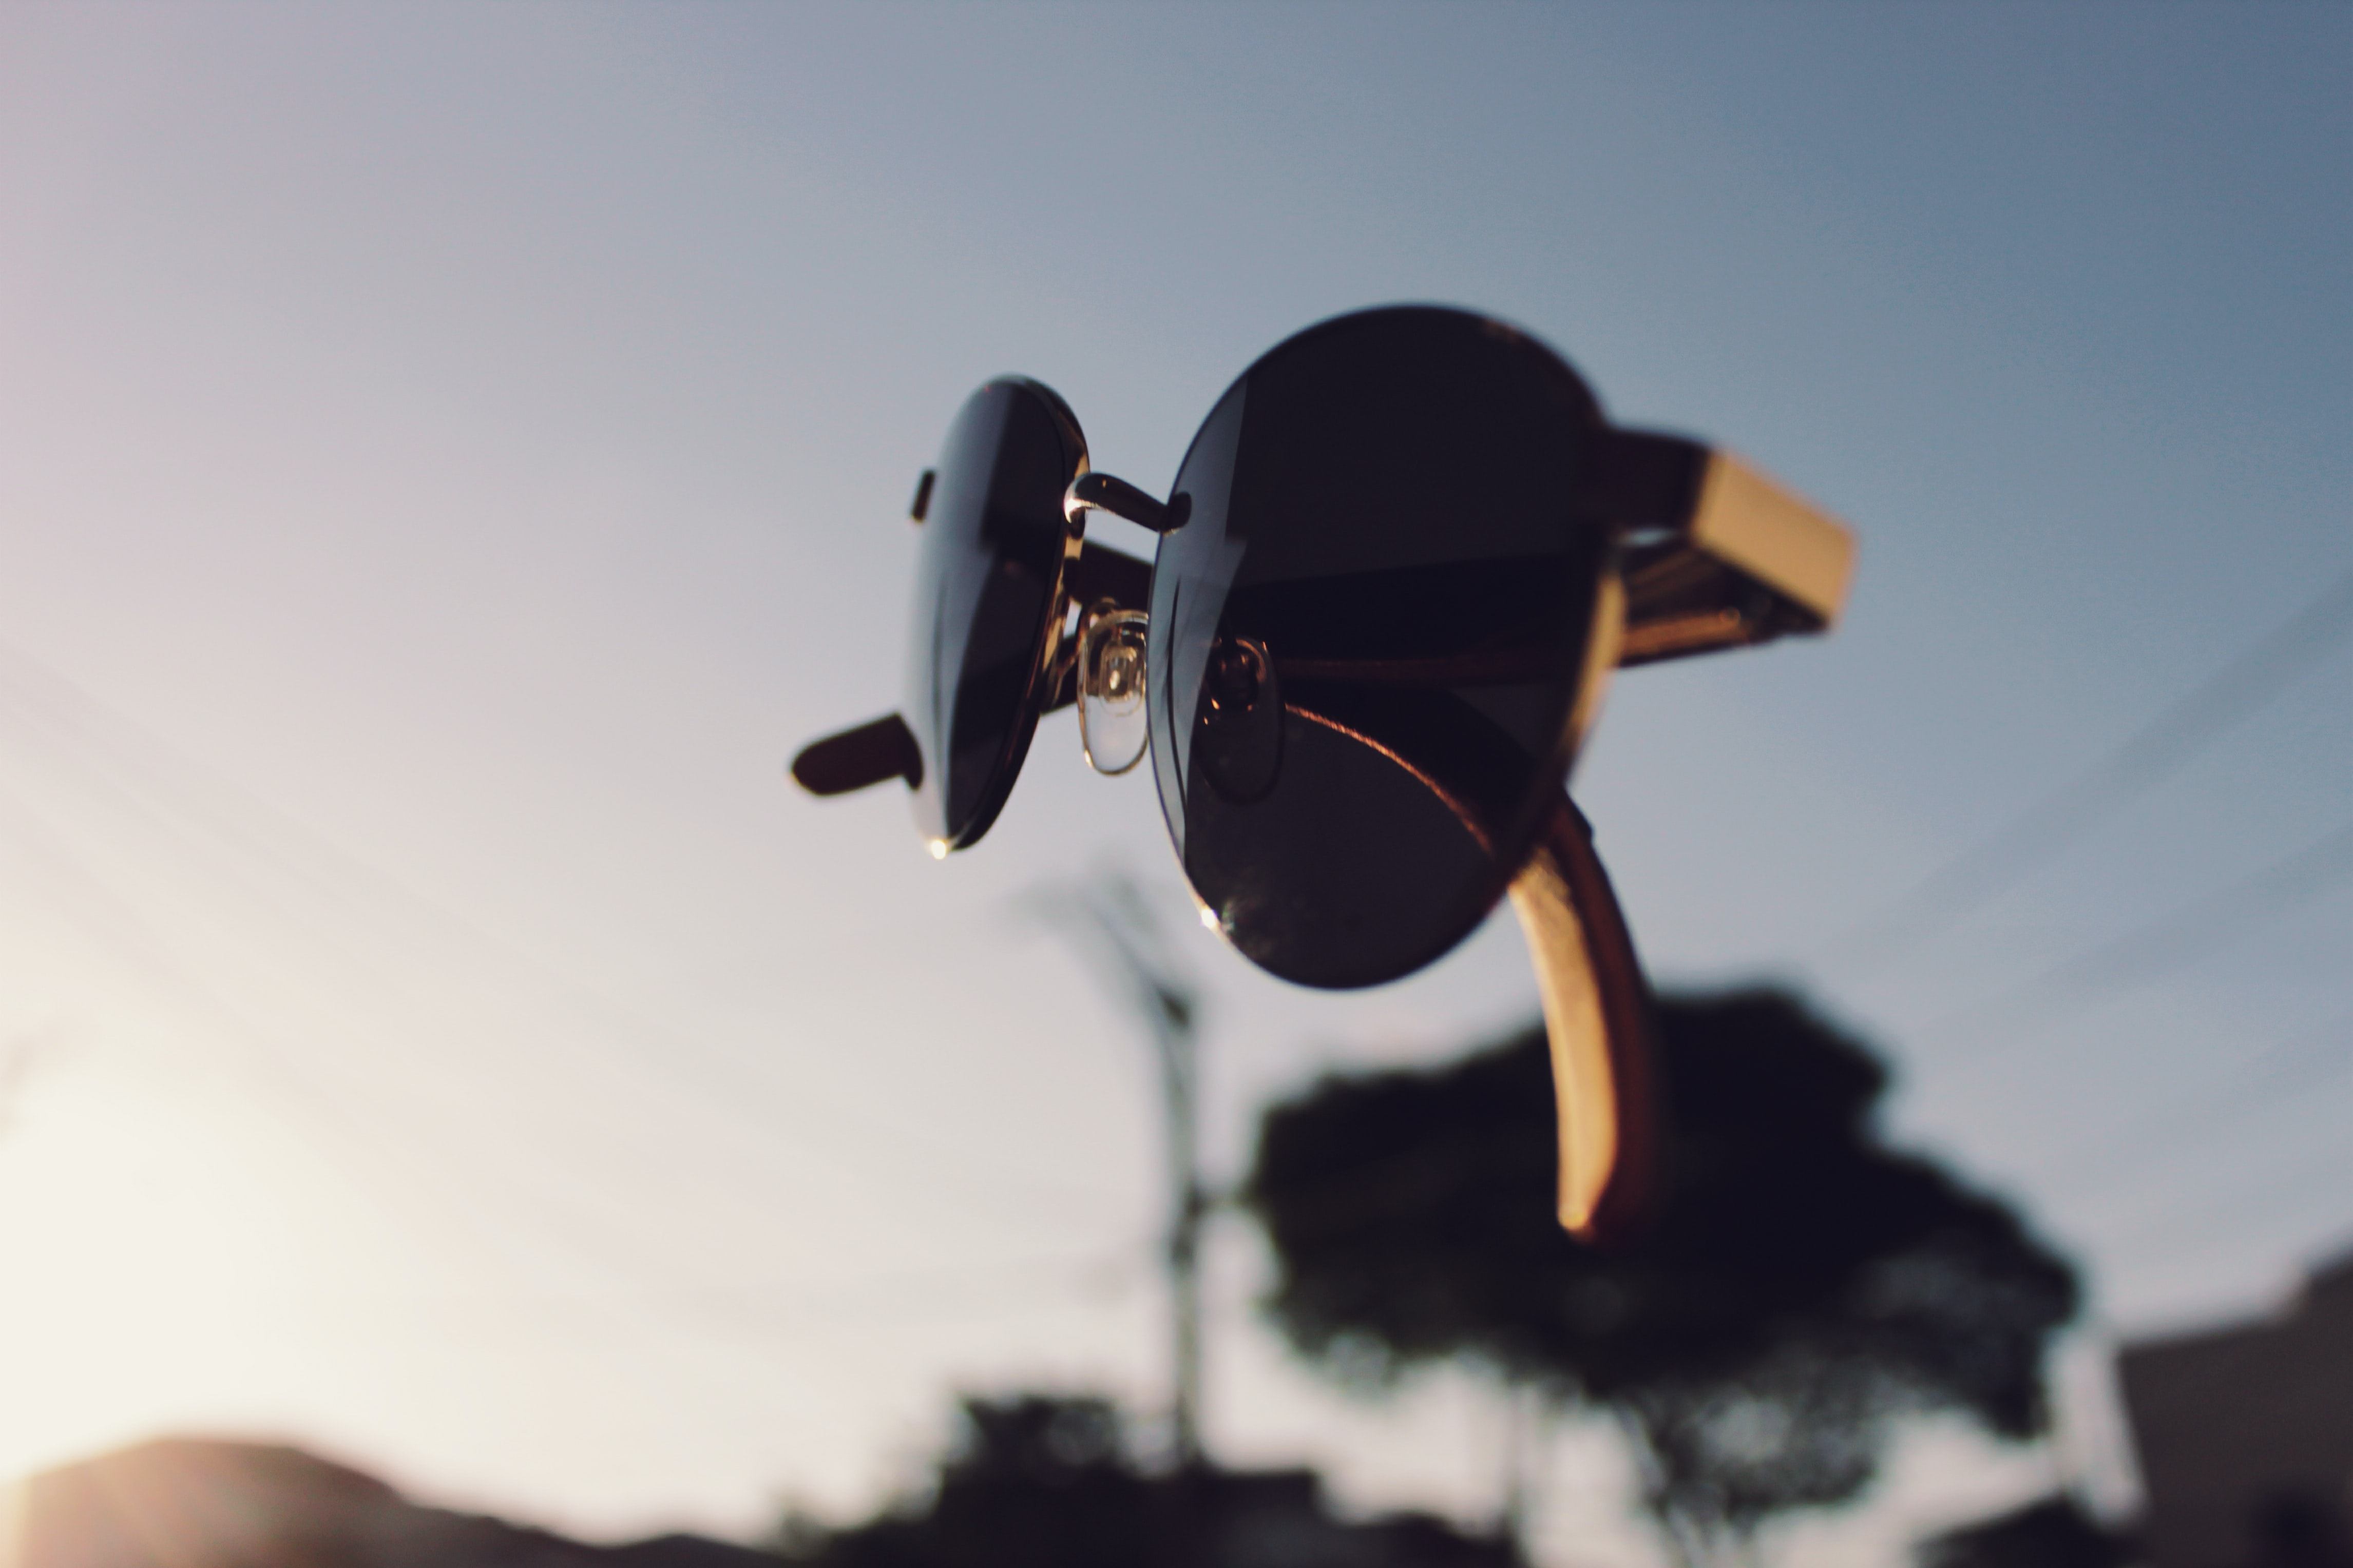 Surreal shot of a pair of sunglasses floating in midair